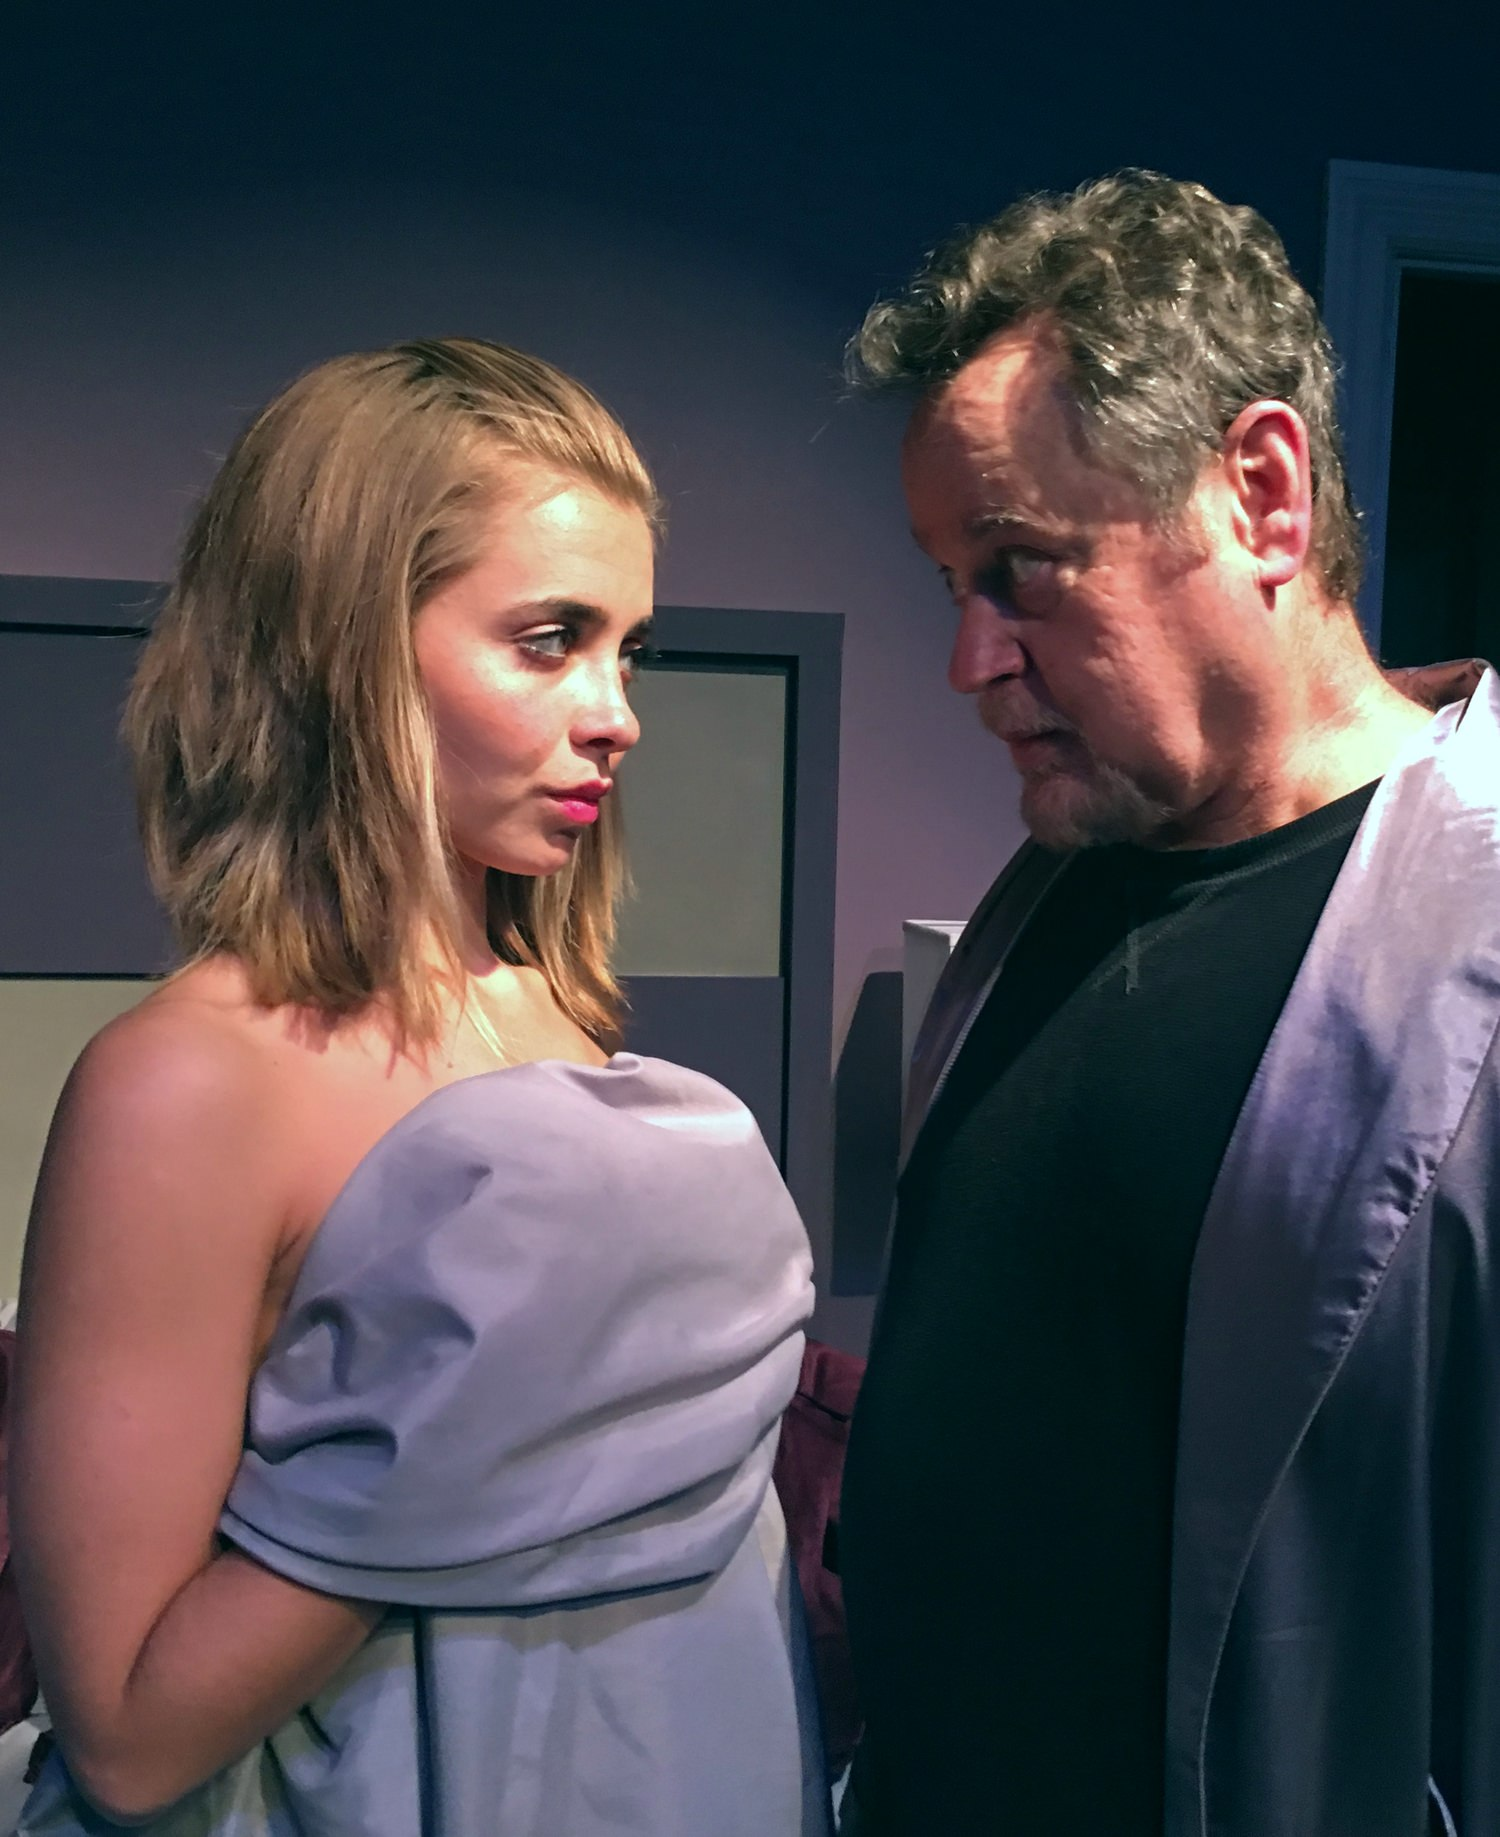 Alternate Reality? Oliver Foxx (Gregg Berger) wants to know how Gina (Albina Katzman) got into his bed in the World Premiere of Albert James Kallis's DeLUSIONAL Affair 1